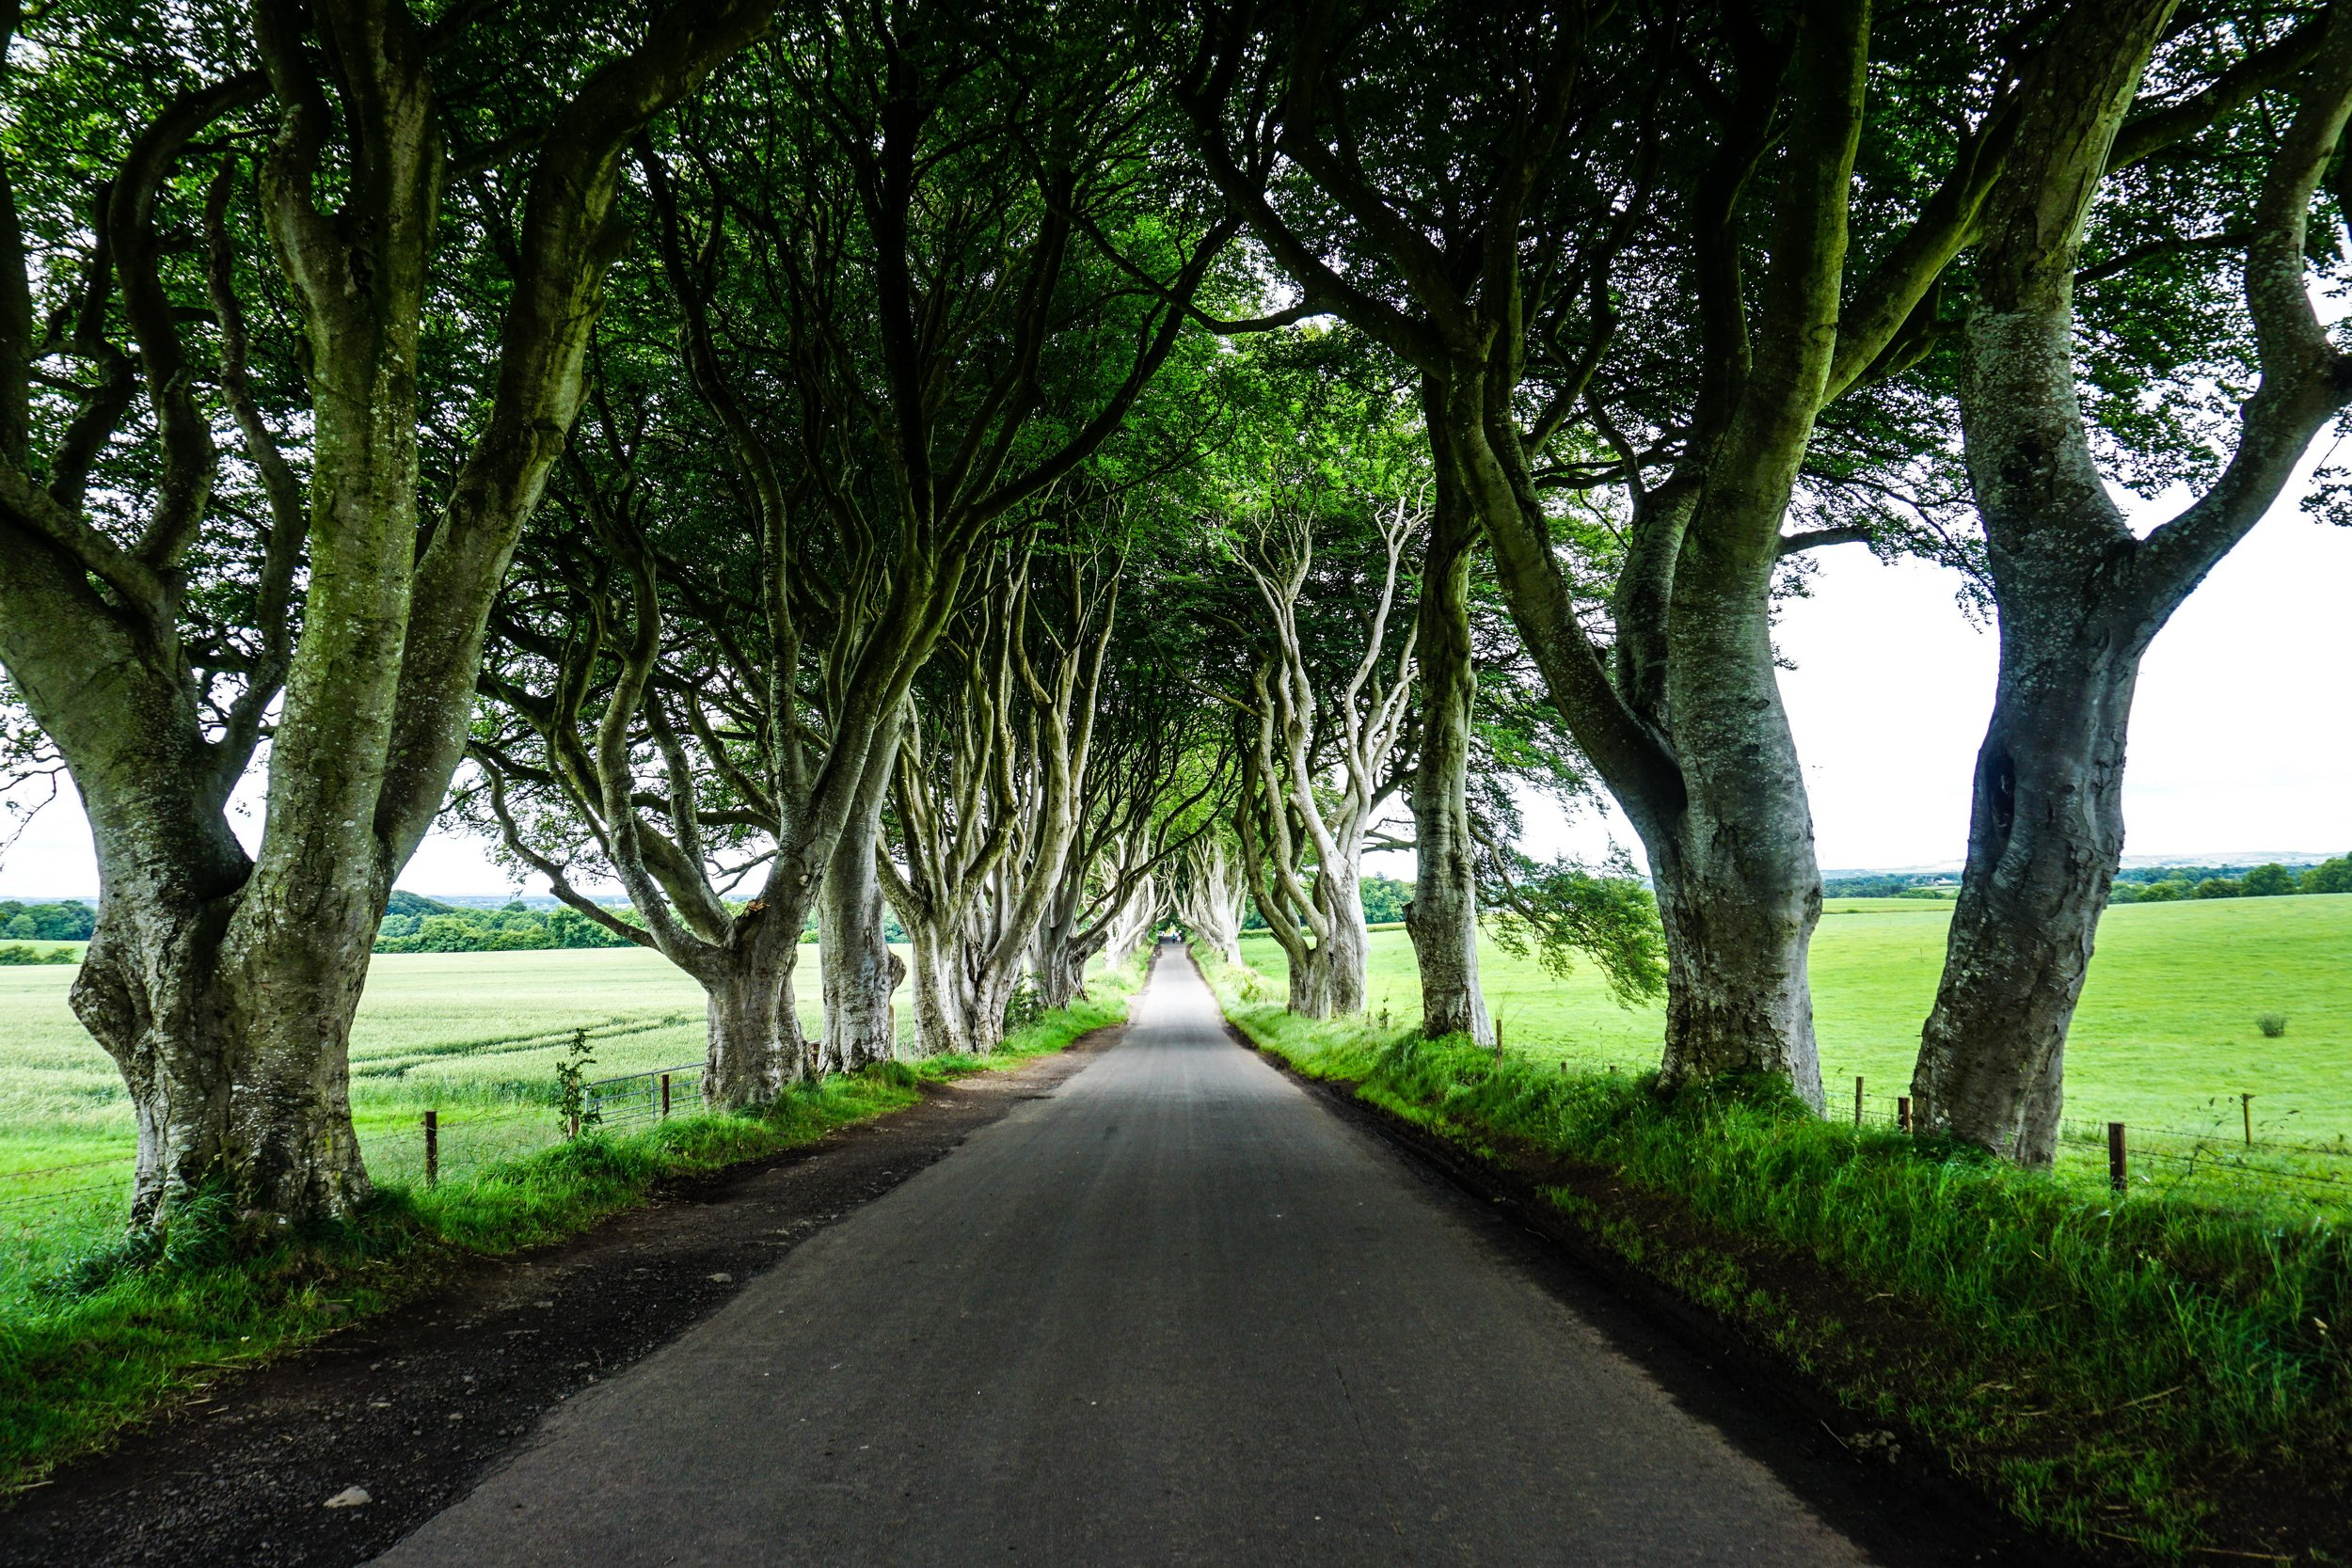 King's Road (actually the Dark Hedges, but shhh)